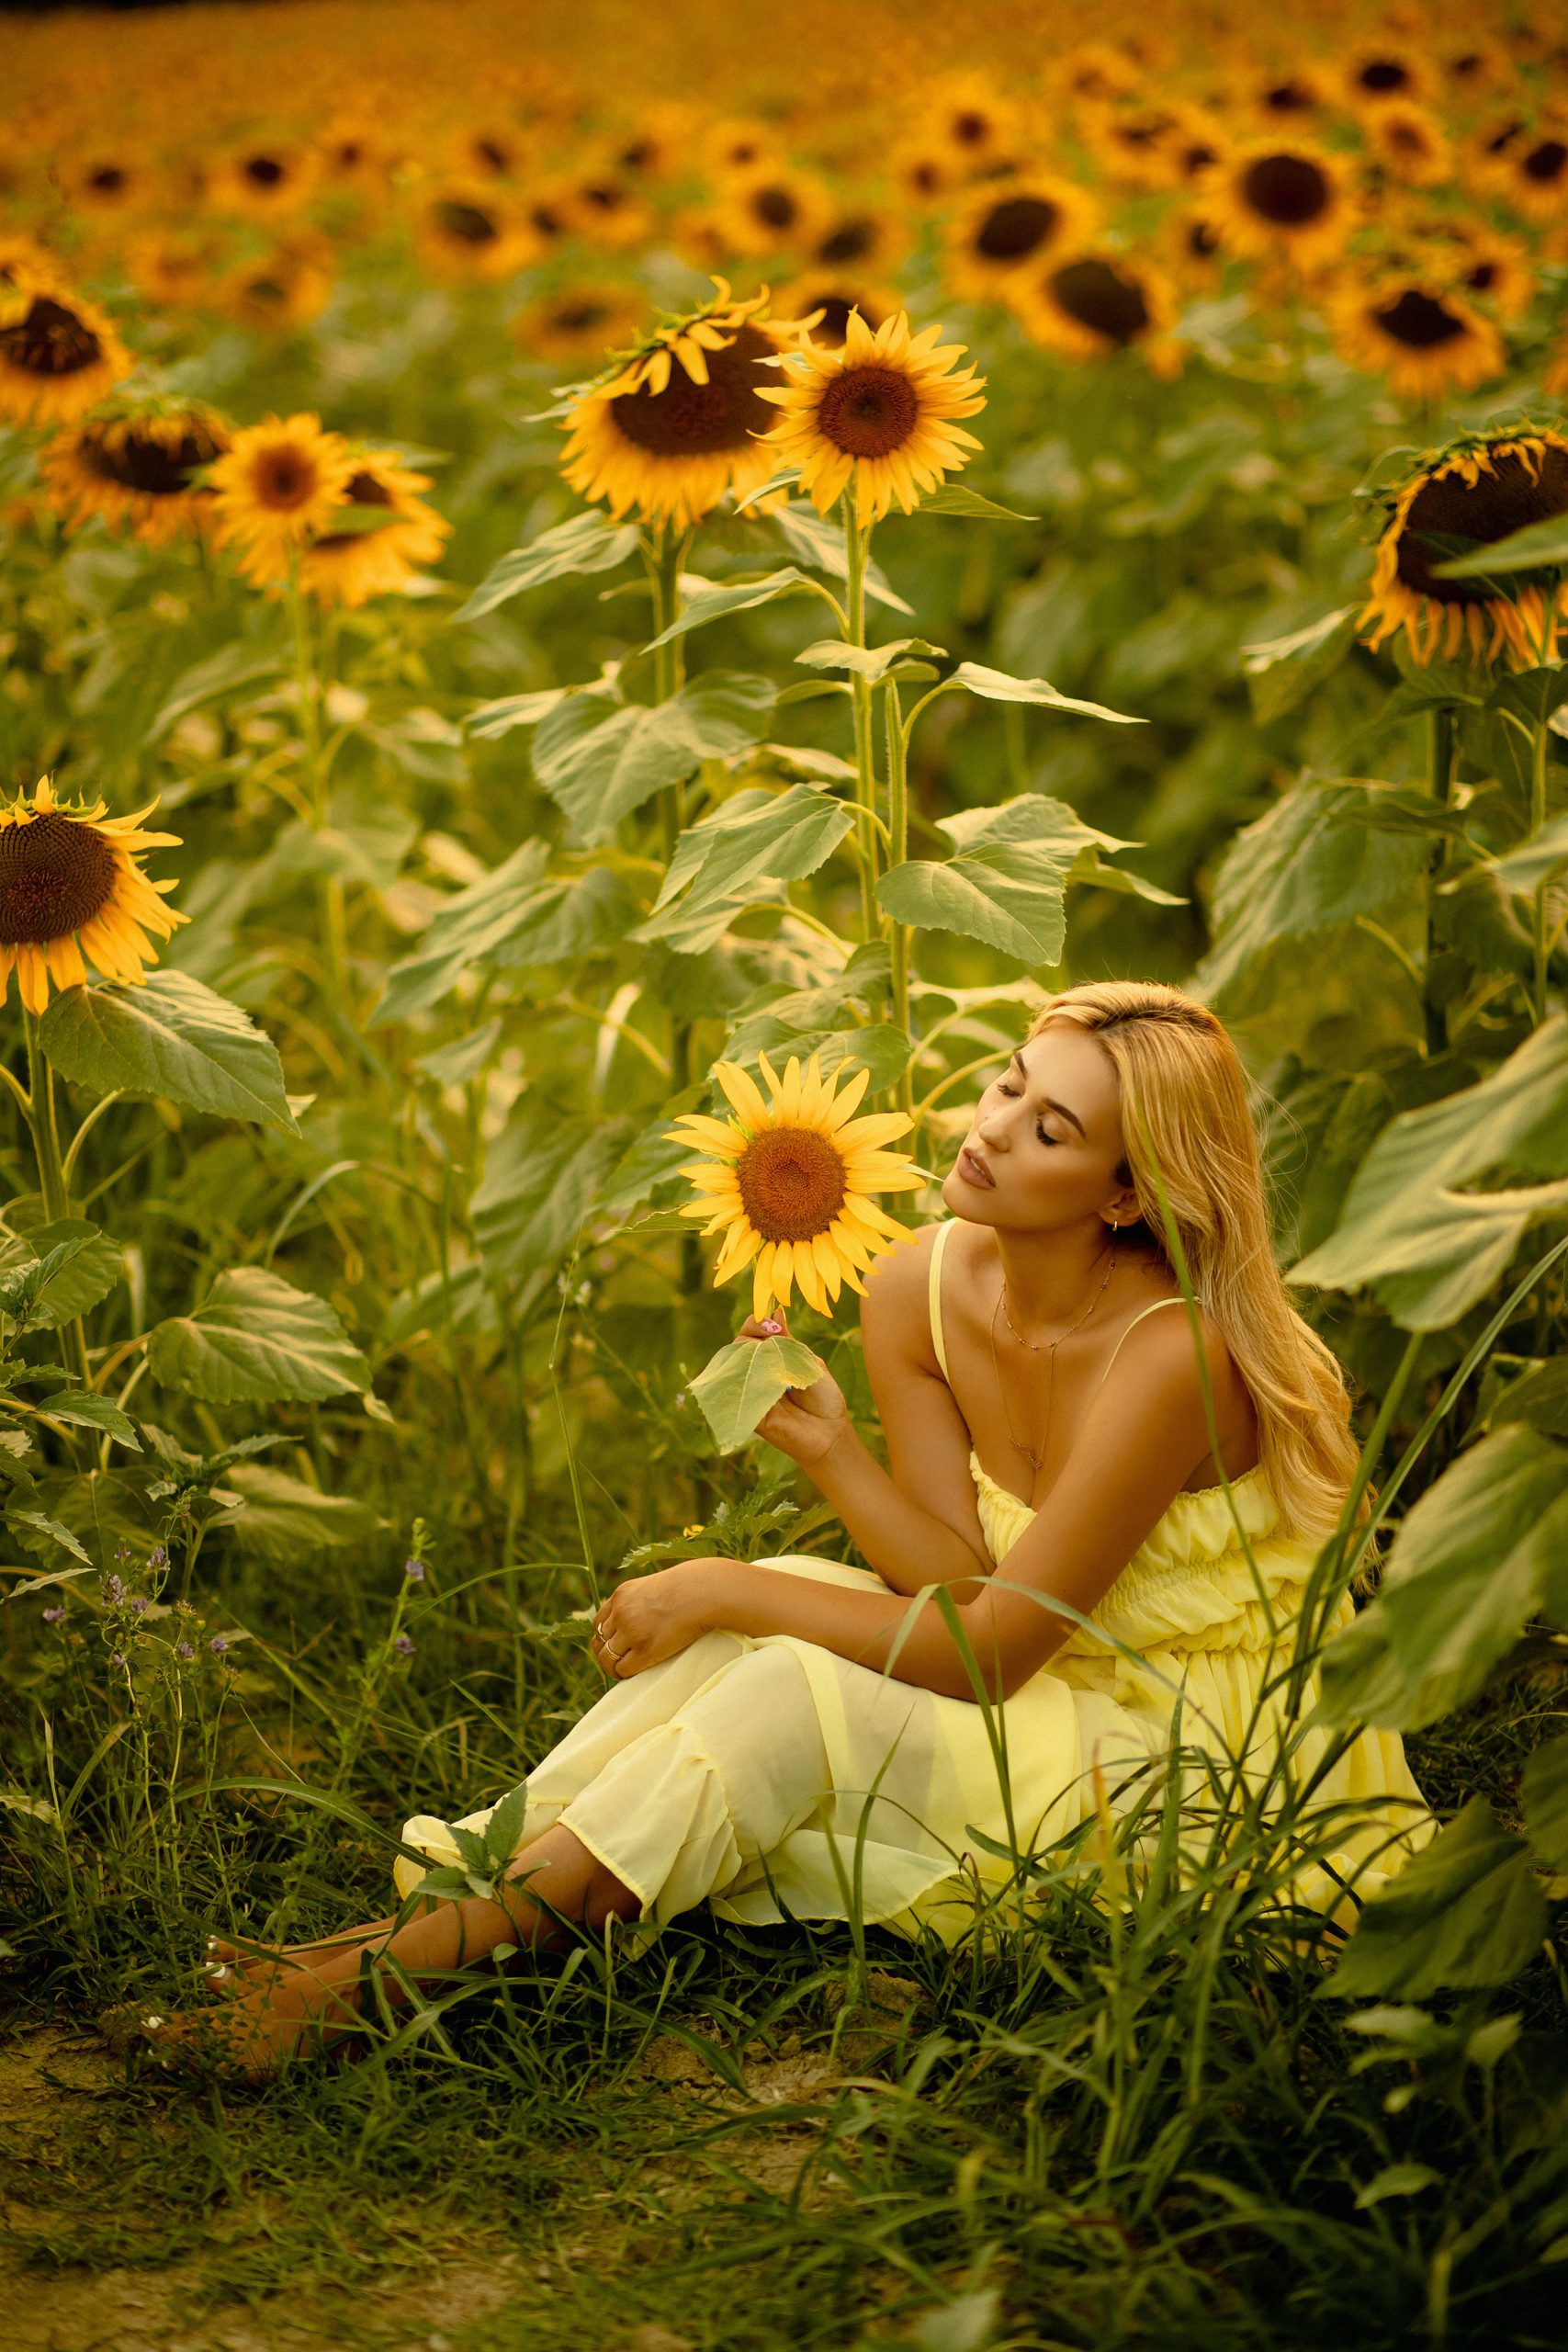 Lady sitting in a sunflower field holding a sunflower